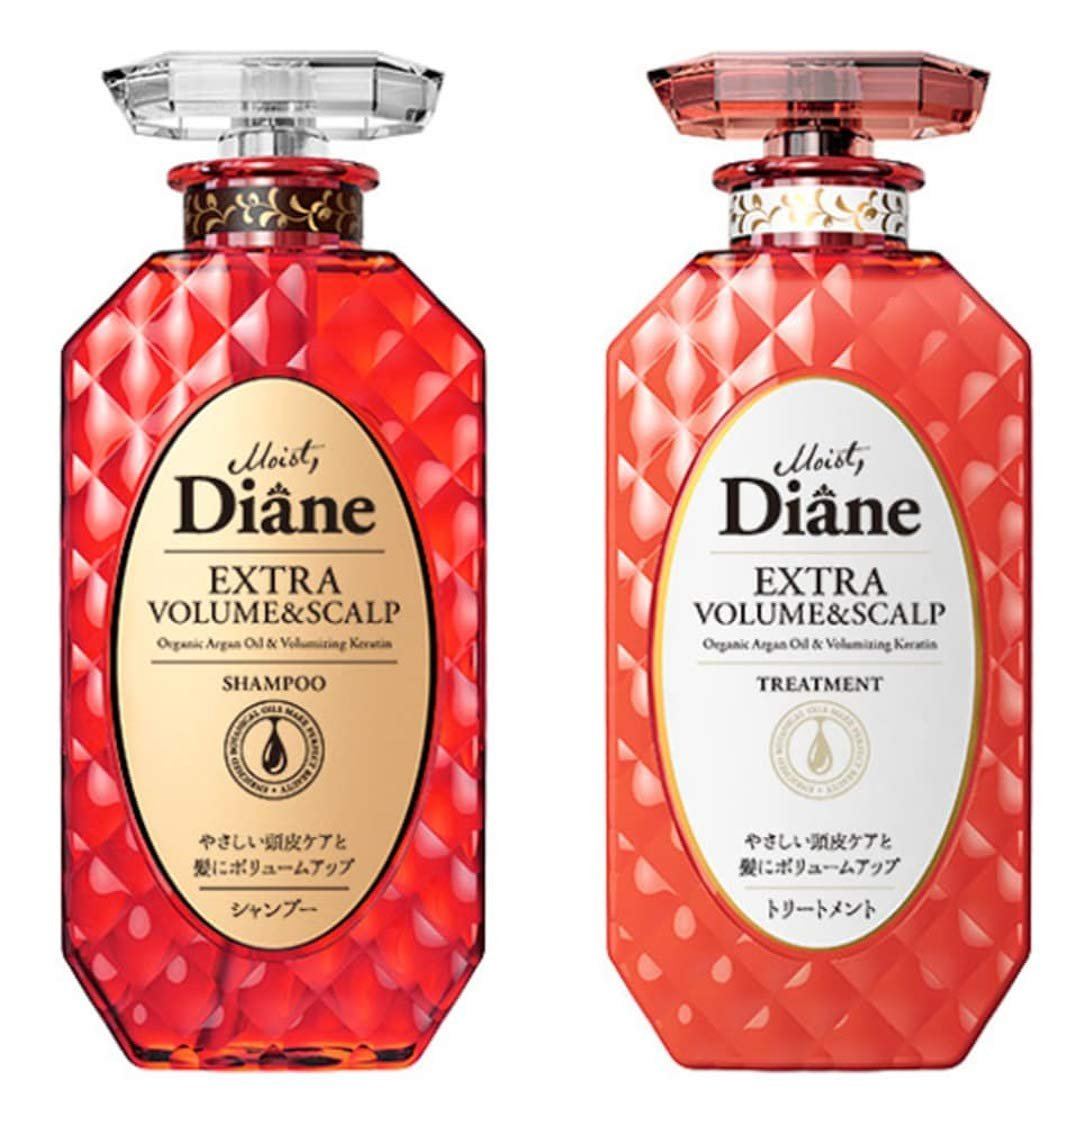 MOIST DIANE Volume and Scalp Shampoo and Conditioner 450 ml.